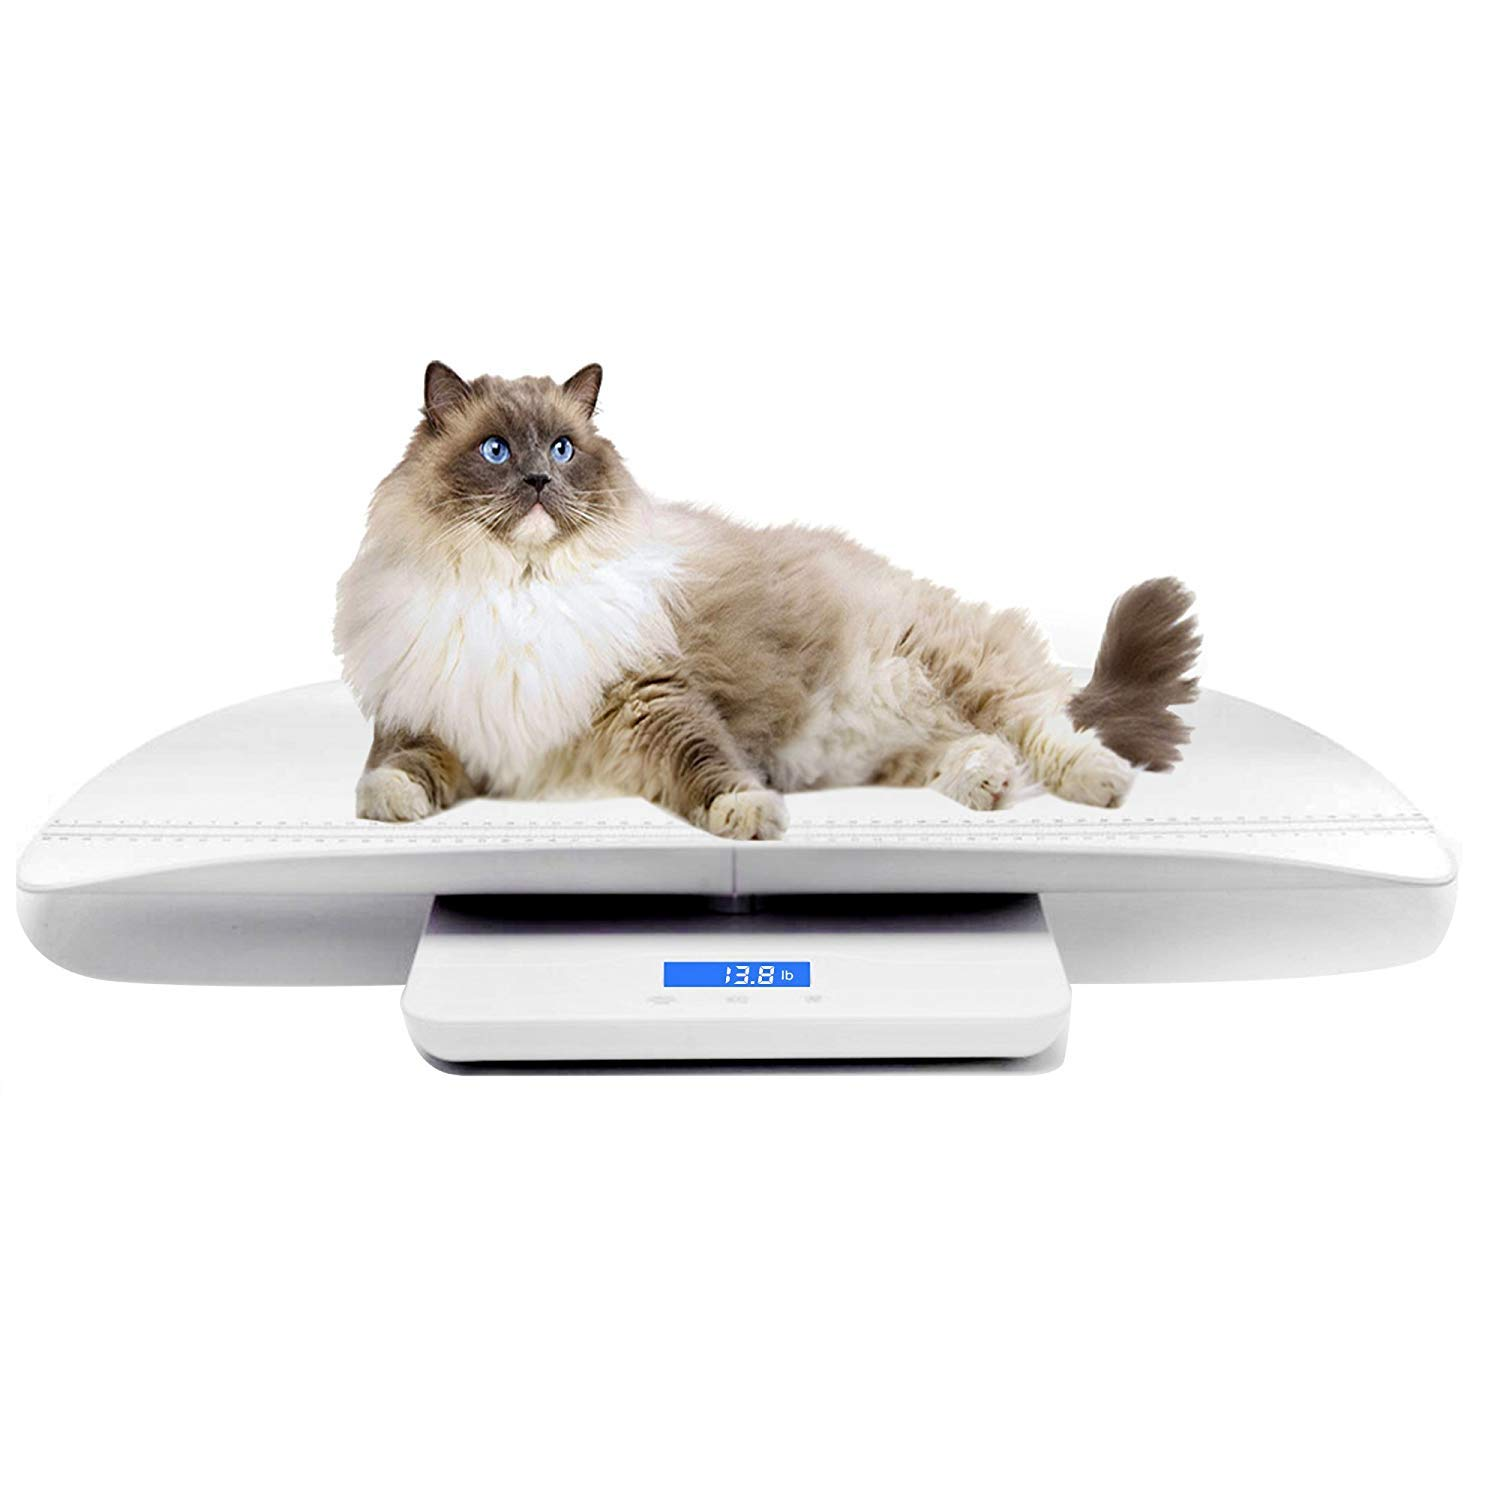 Multi-Function Digital Pet Scale to Measure Dog and Cat Weight Accurately Up to 220 Lbs, Precision at ± 10g, Blue Backlight, Especially for Pregnant Cats and Baby Pets (60 cm) by TeaTime (Image #7)